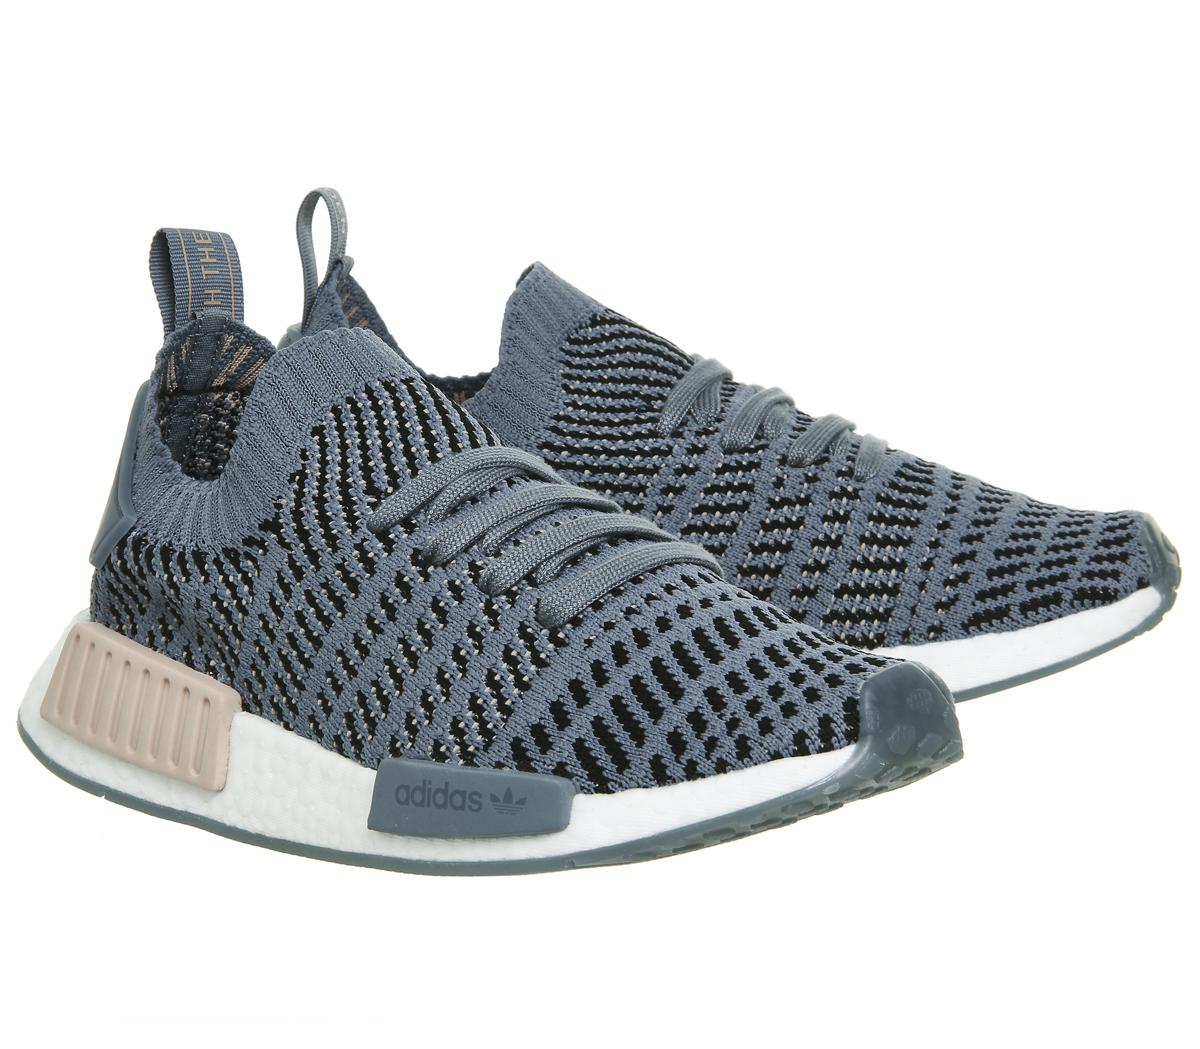 reputable site d742a e4e9d Lyst - Adidas Nmd R1 Prime Knit Trainers